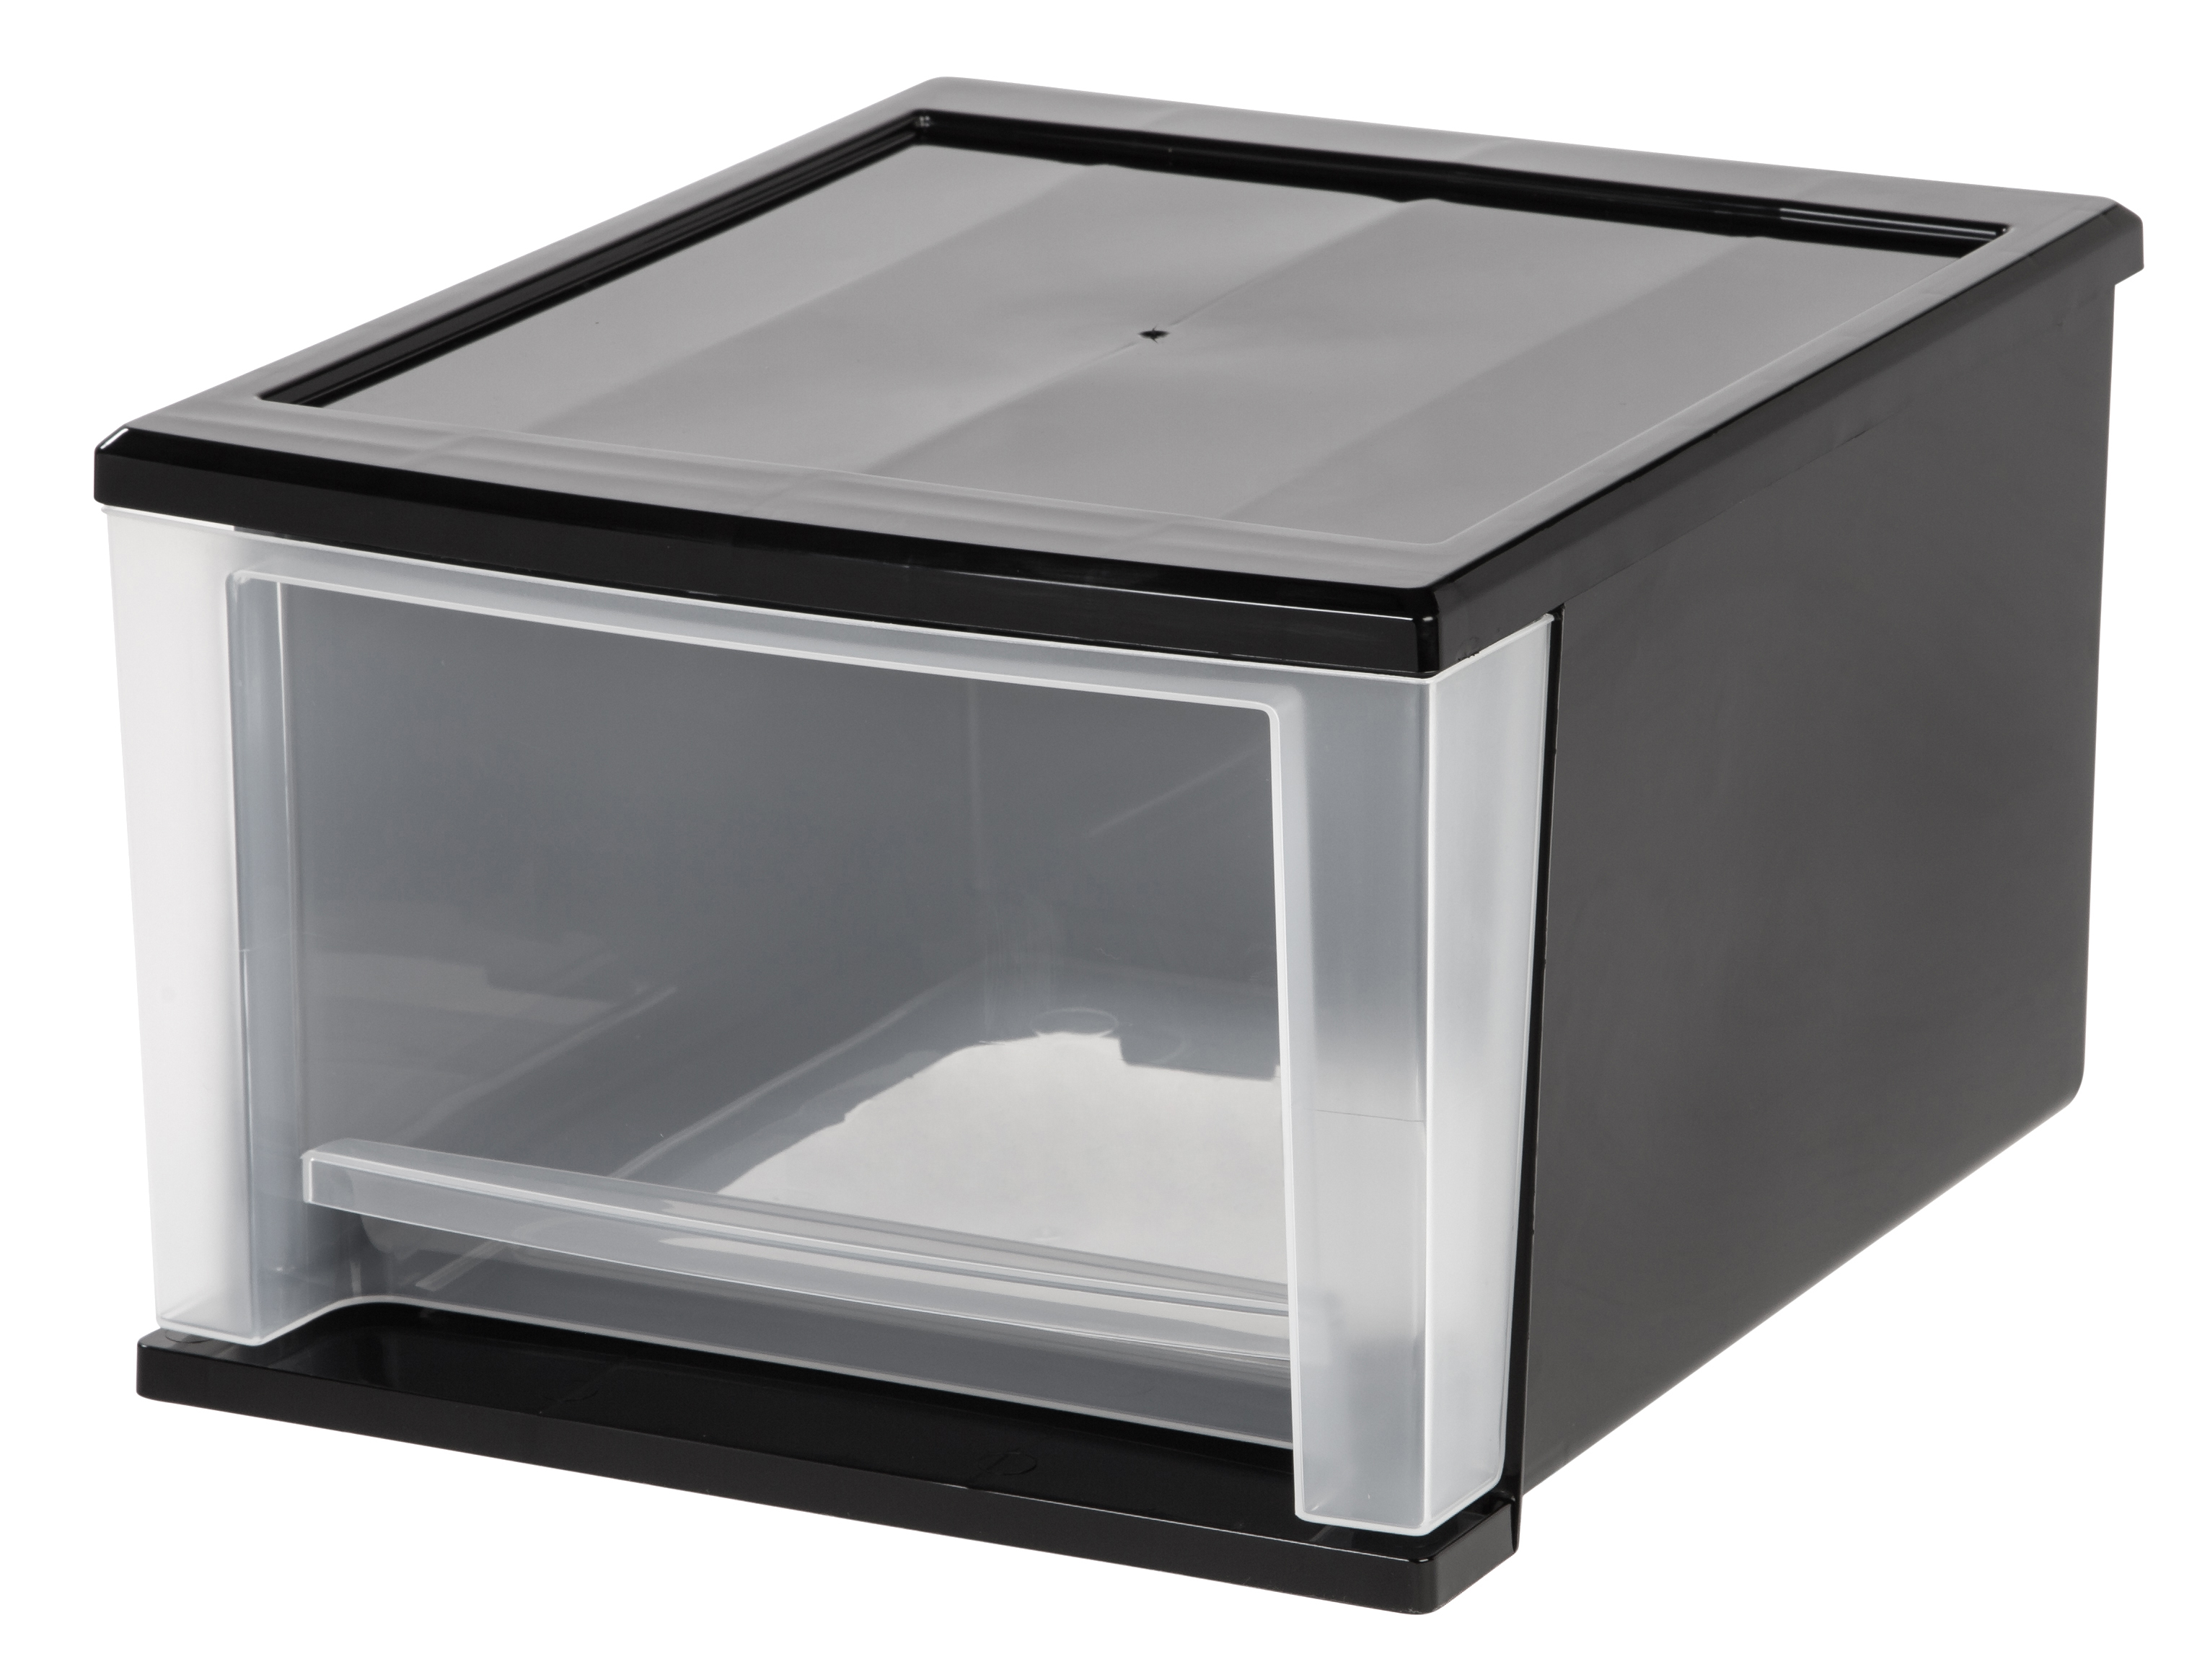 "Iris® Modular Drawer, 4.25 Gallon, 14 3/10""L x 12 1/10""W x 14 3/10""D x 8 2/5""H, Black/Clear"